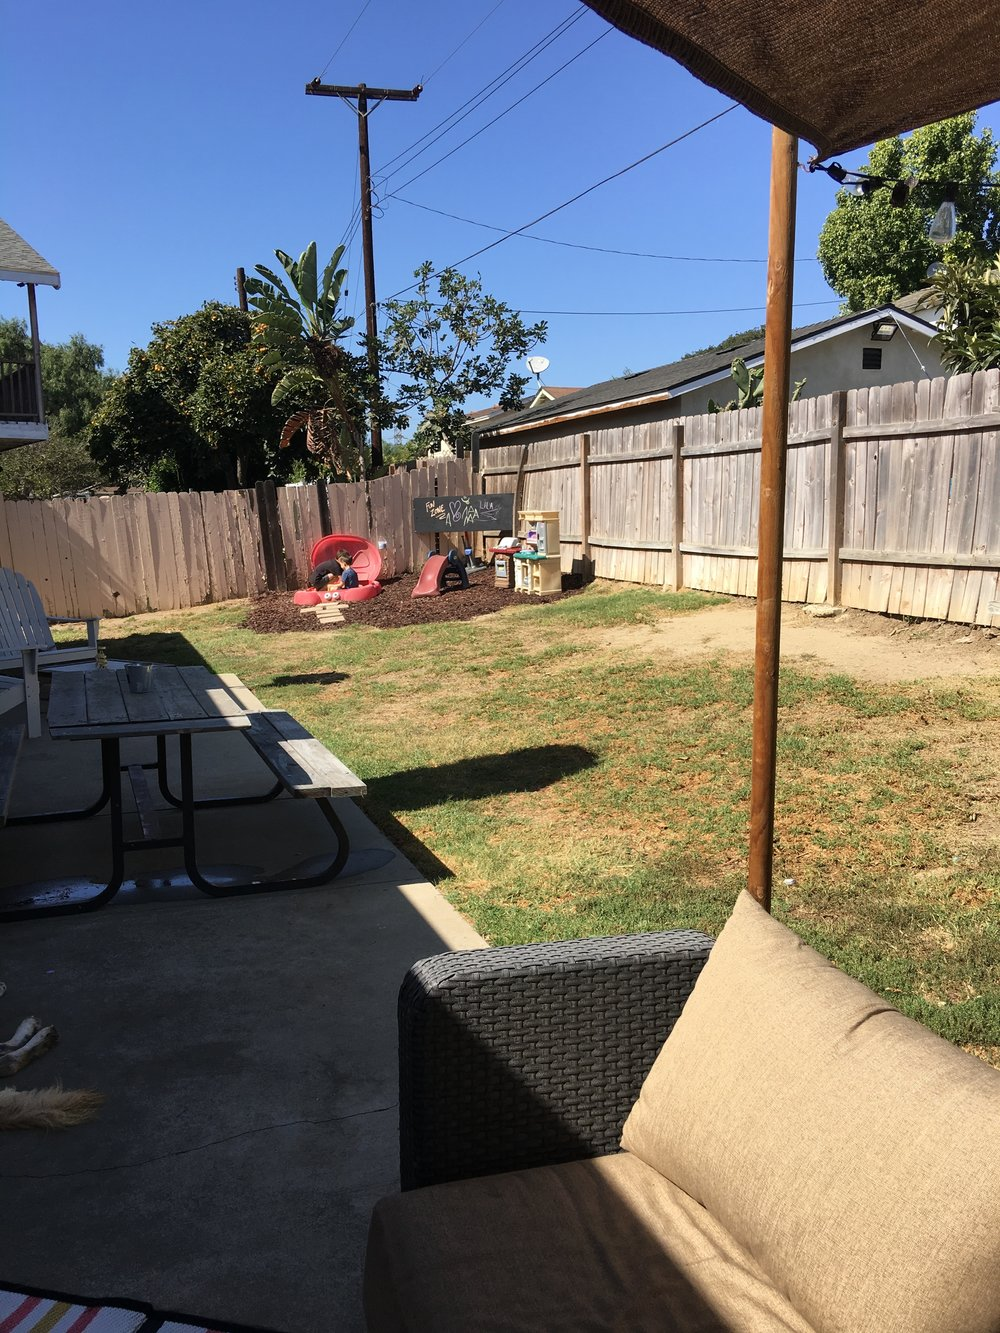 Kids Zone - It's fun to make zones in spaces, especially yards.So that pic was one I took right after I set up the kids area. Now it has a huge sun sail over top to shade them while they play. It has direct sunlight much of the day so I needed them to be protected too.